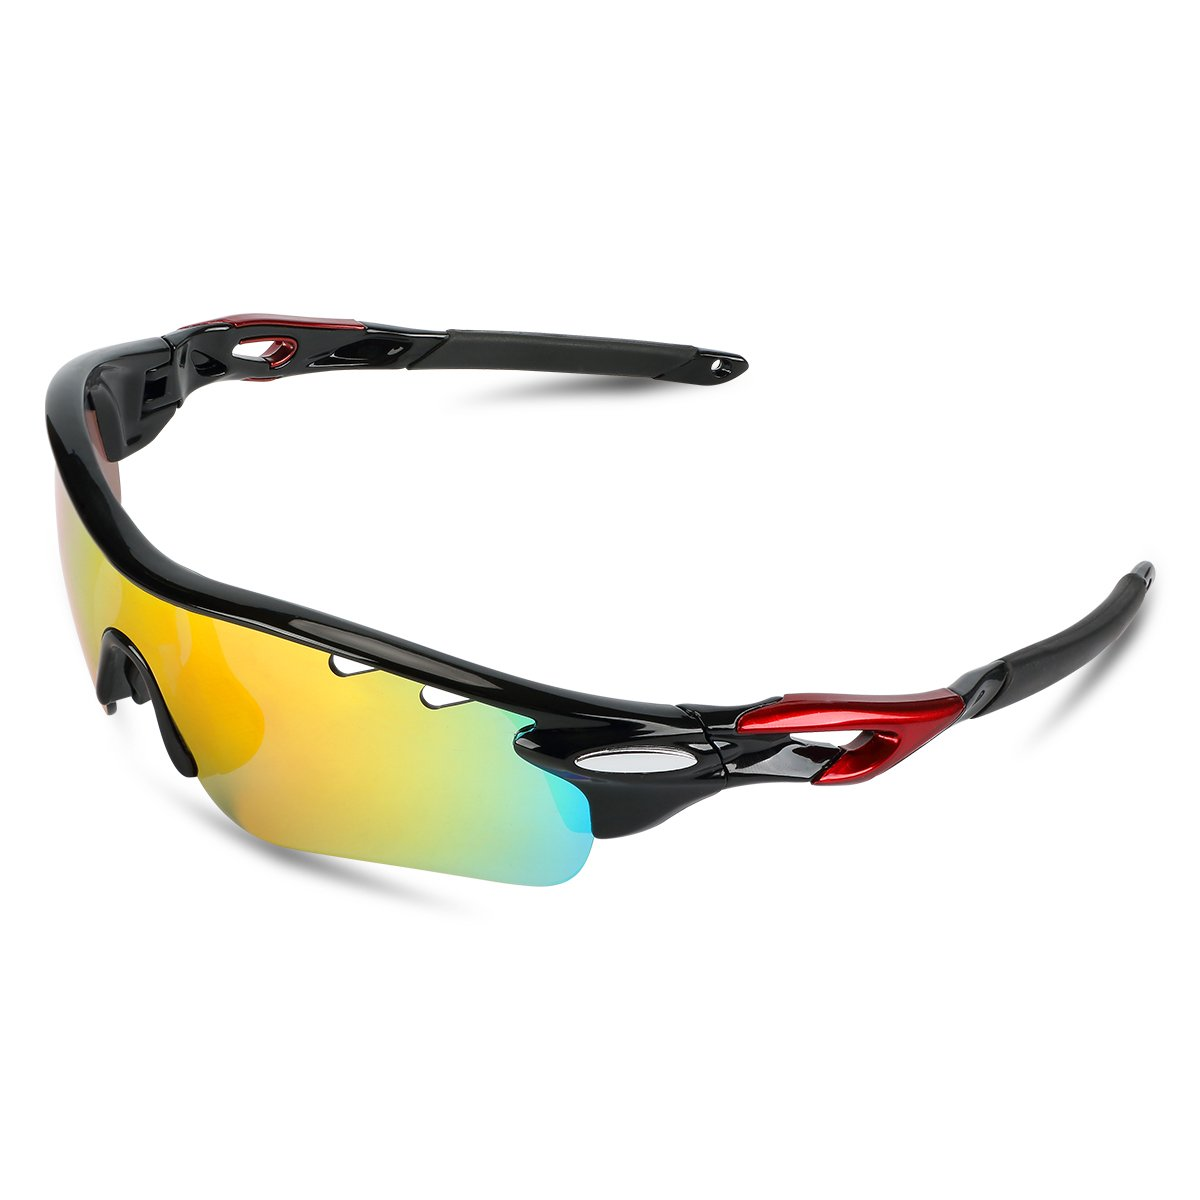 URCAMP Polarized Sport Sunglasses UV400 PROTECTION With 4 Interchangeable Lenses